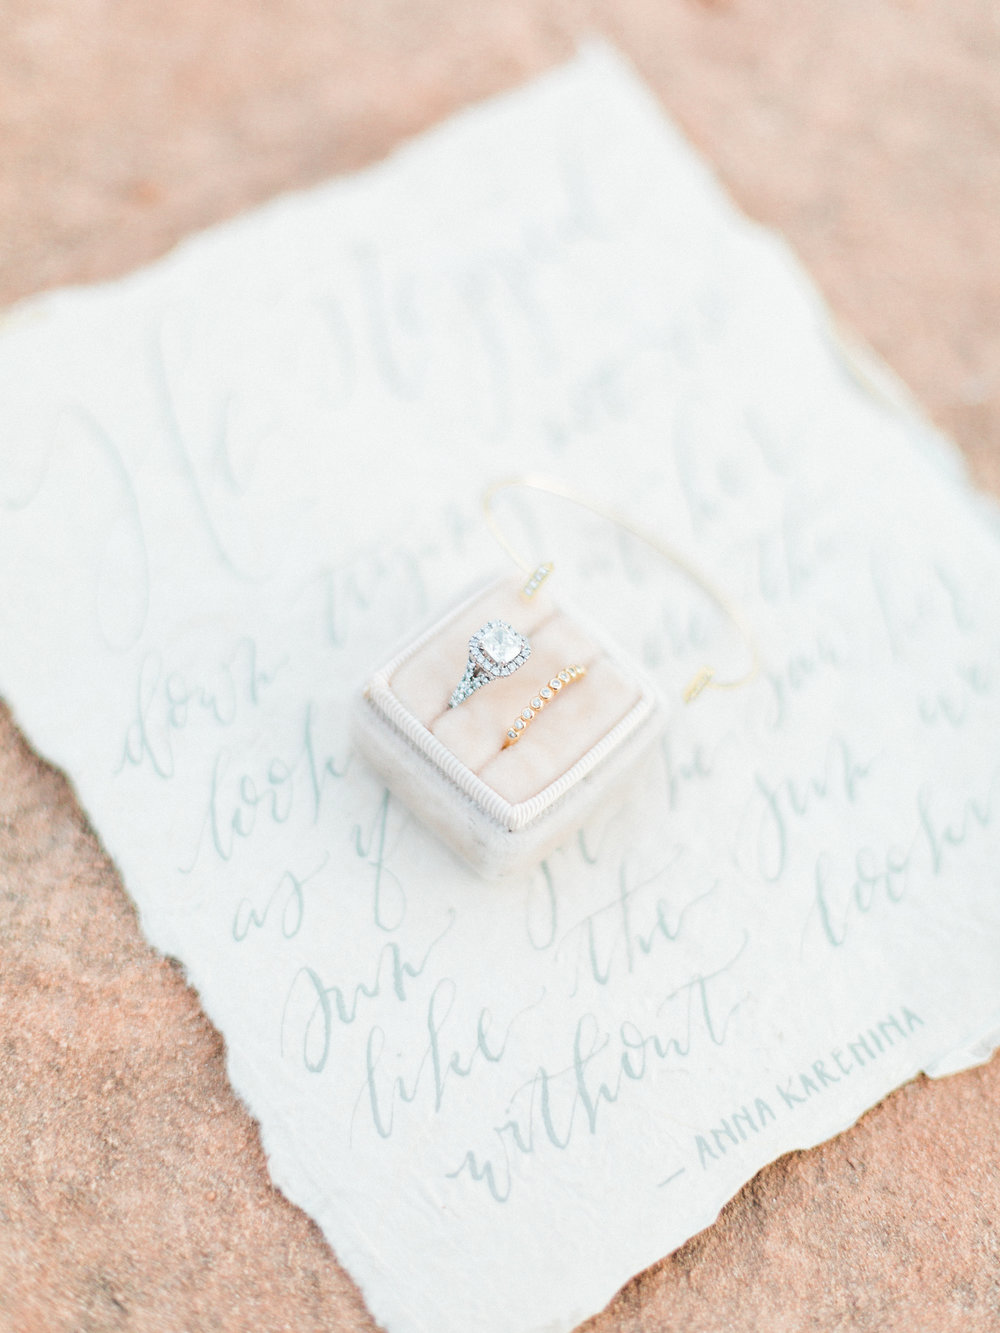 Callie Manion Photography_Pastel Desert Wedding Inspiration_133.jpg